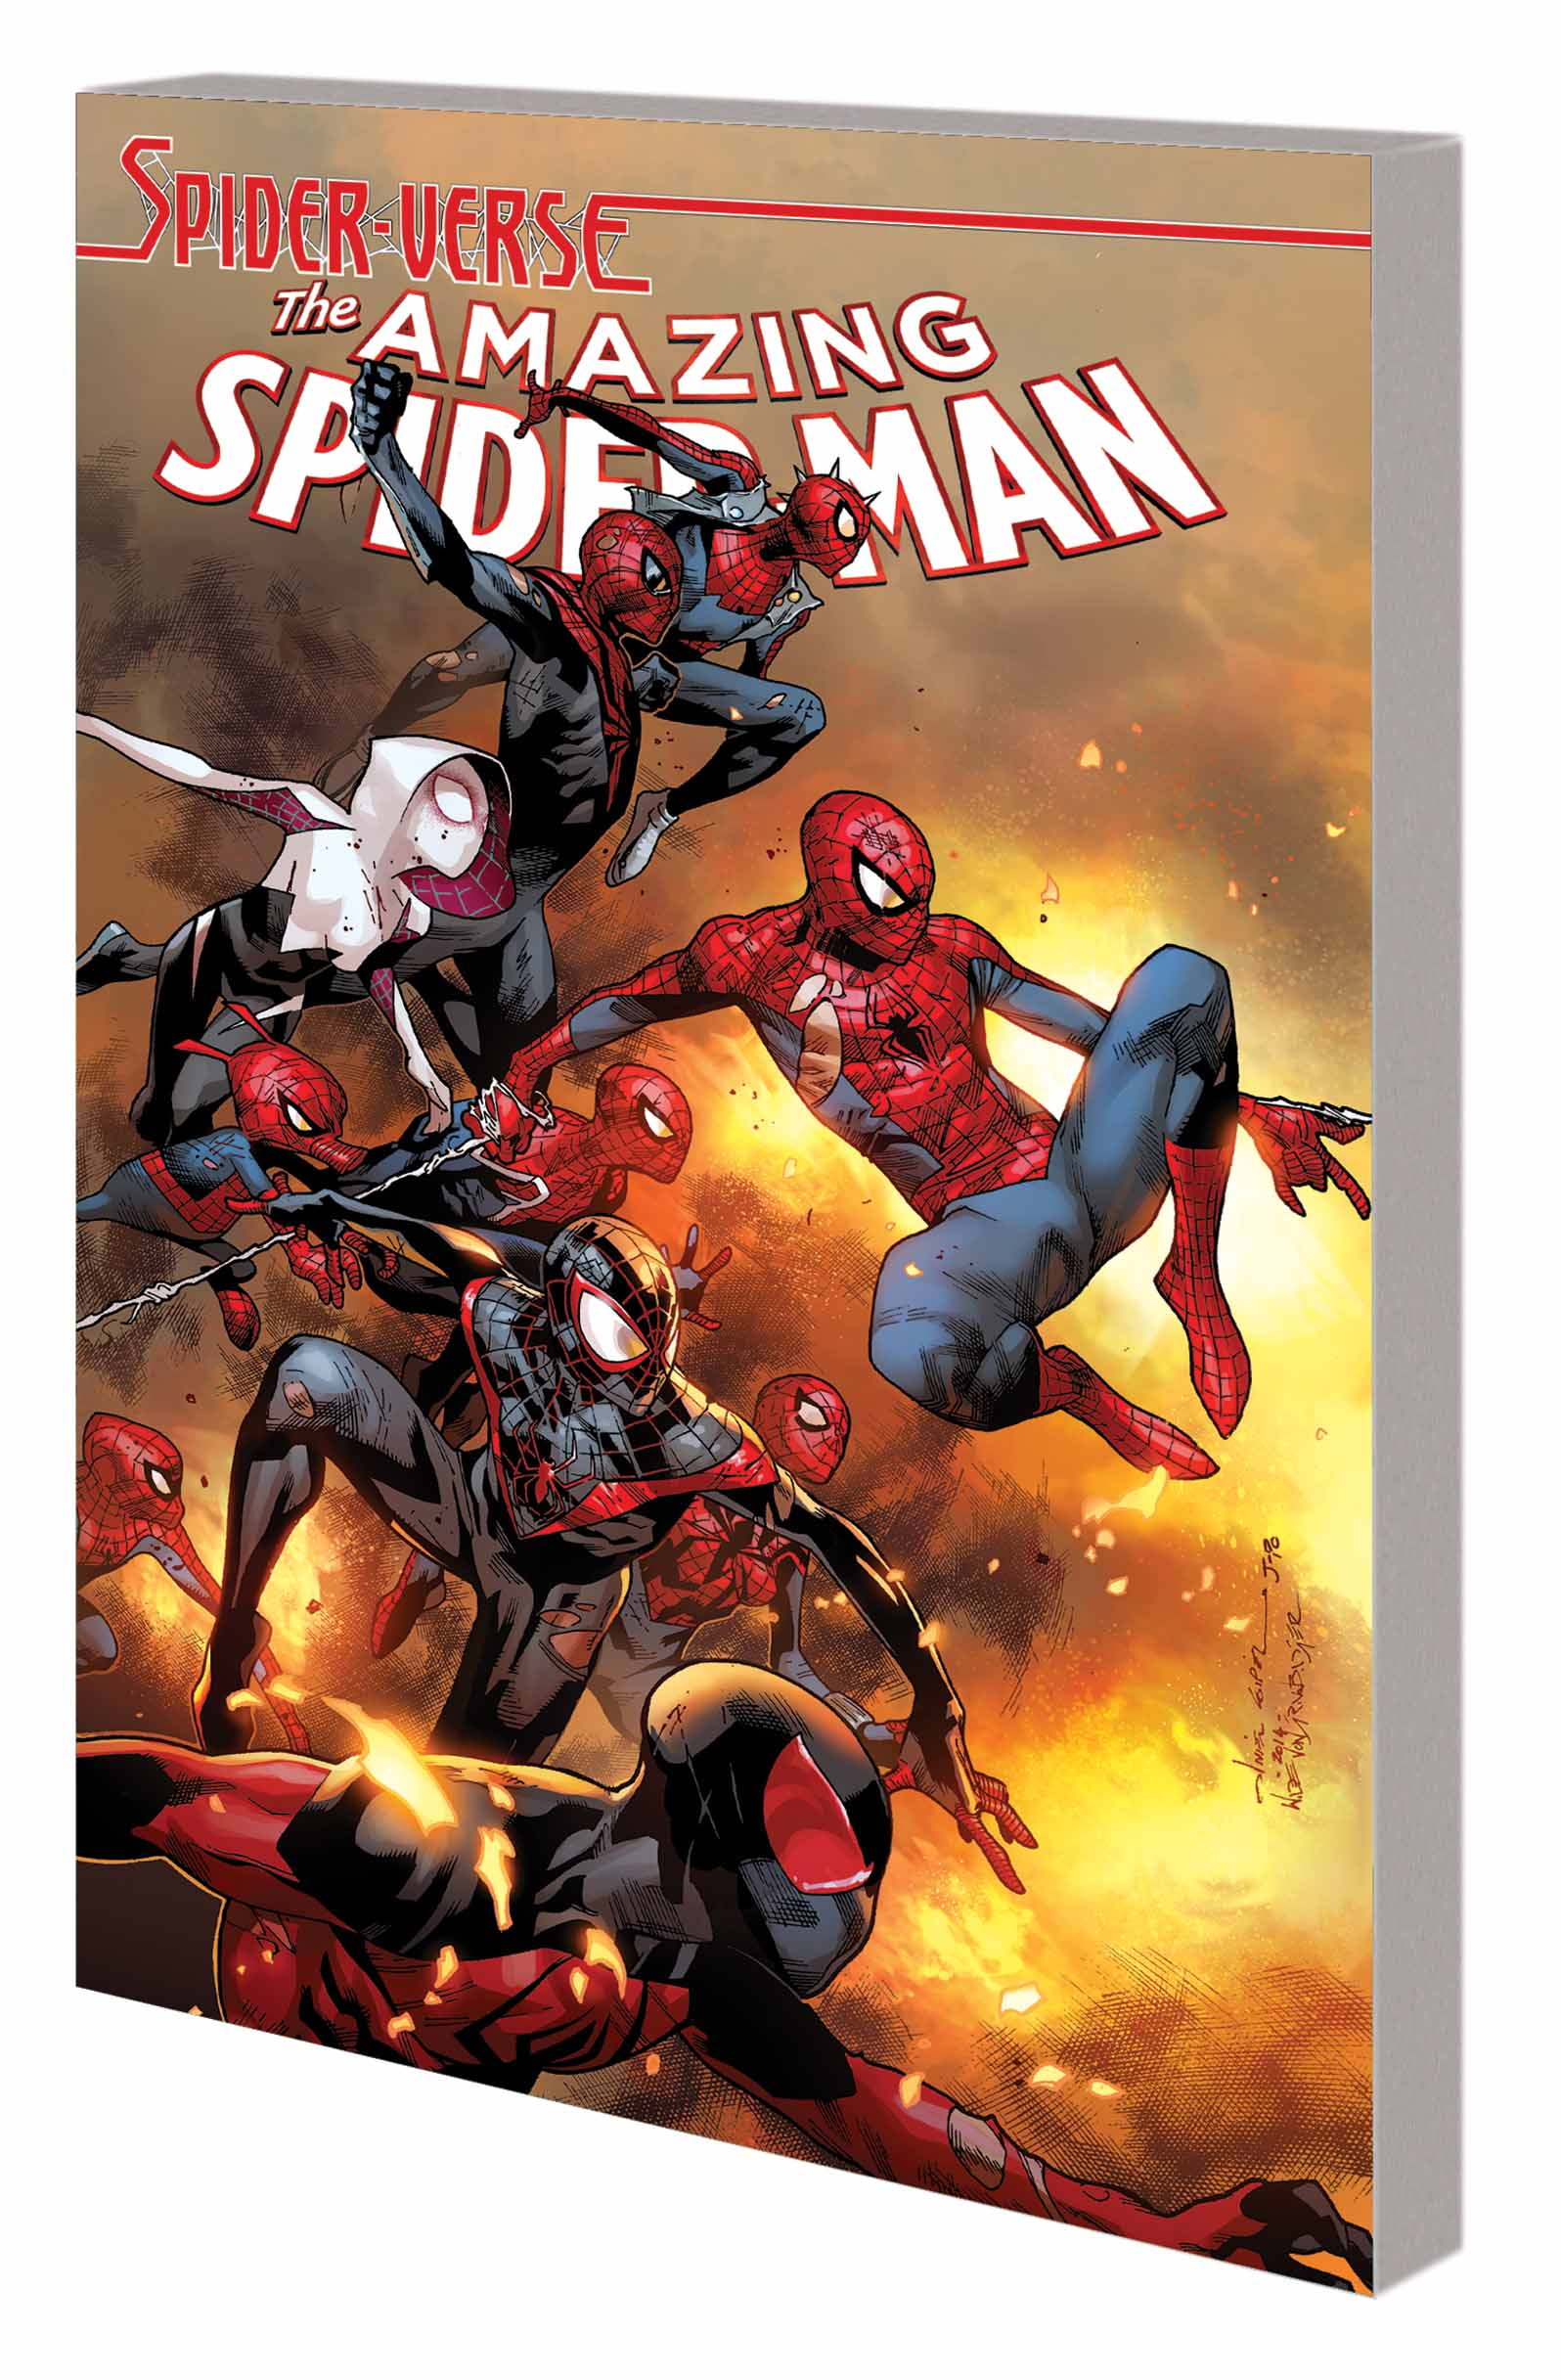 Amazing Spider-Man Vol. 3: Spider-Verse (Trade Paperback)